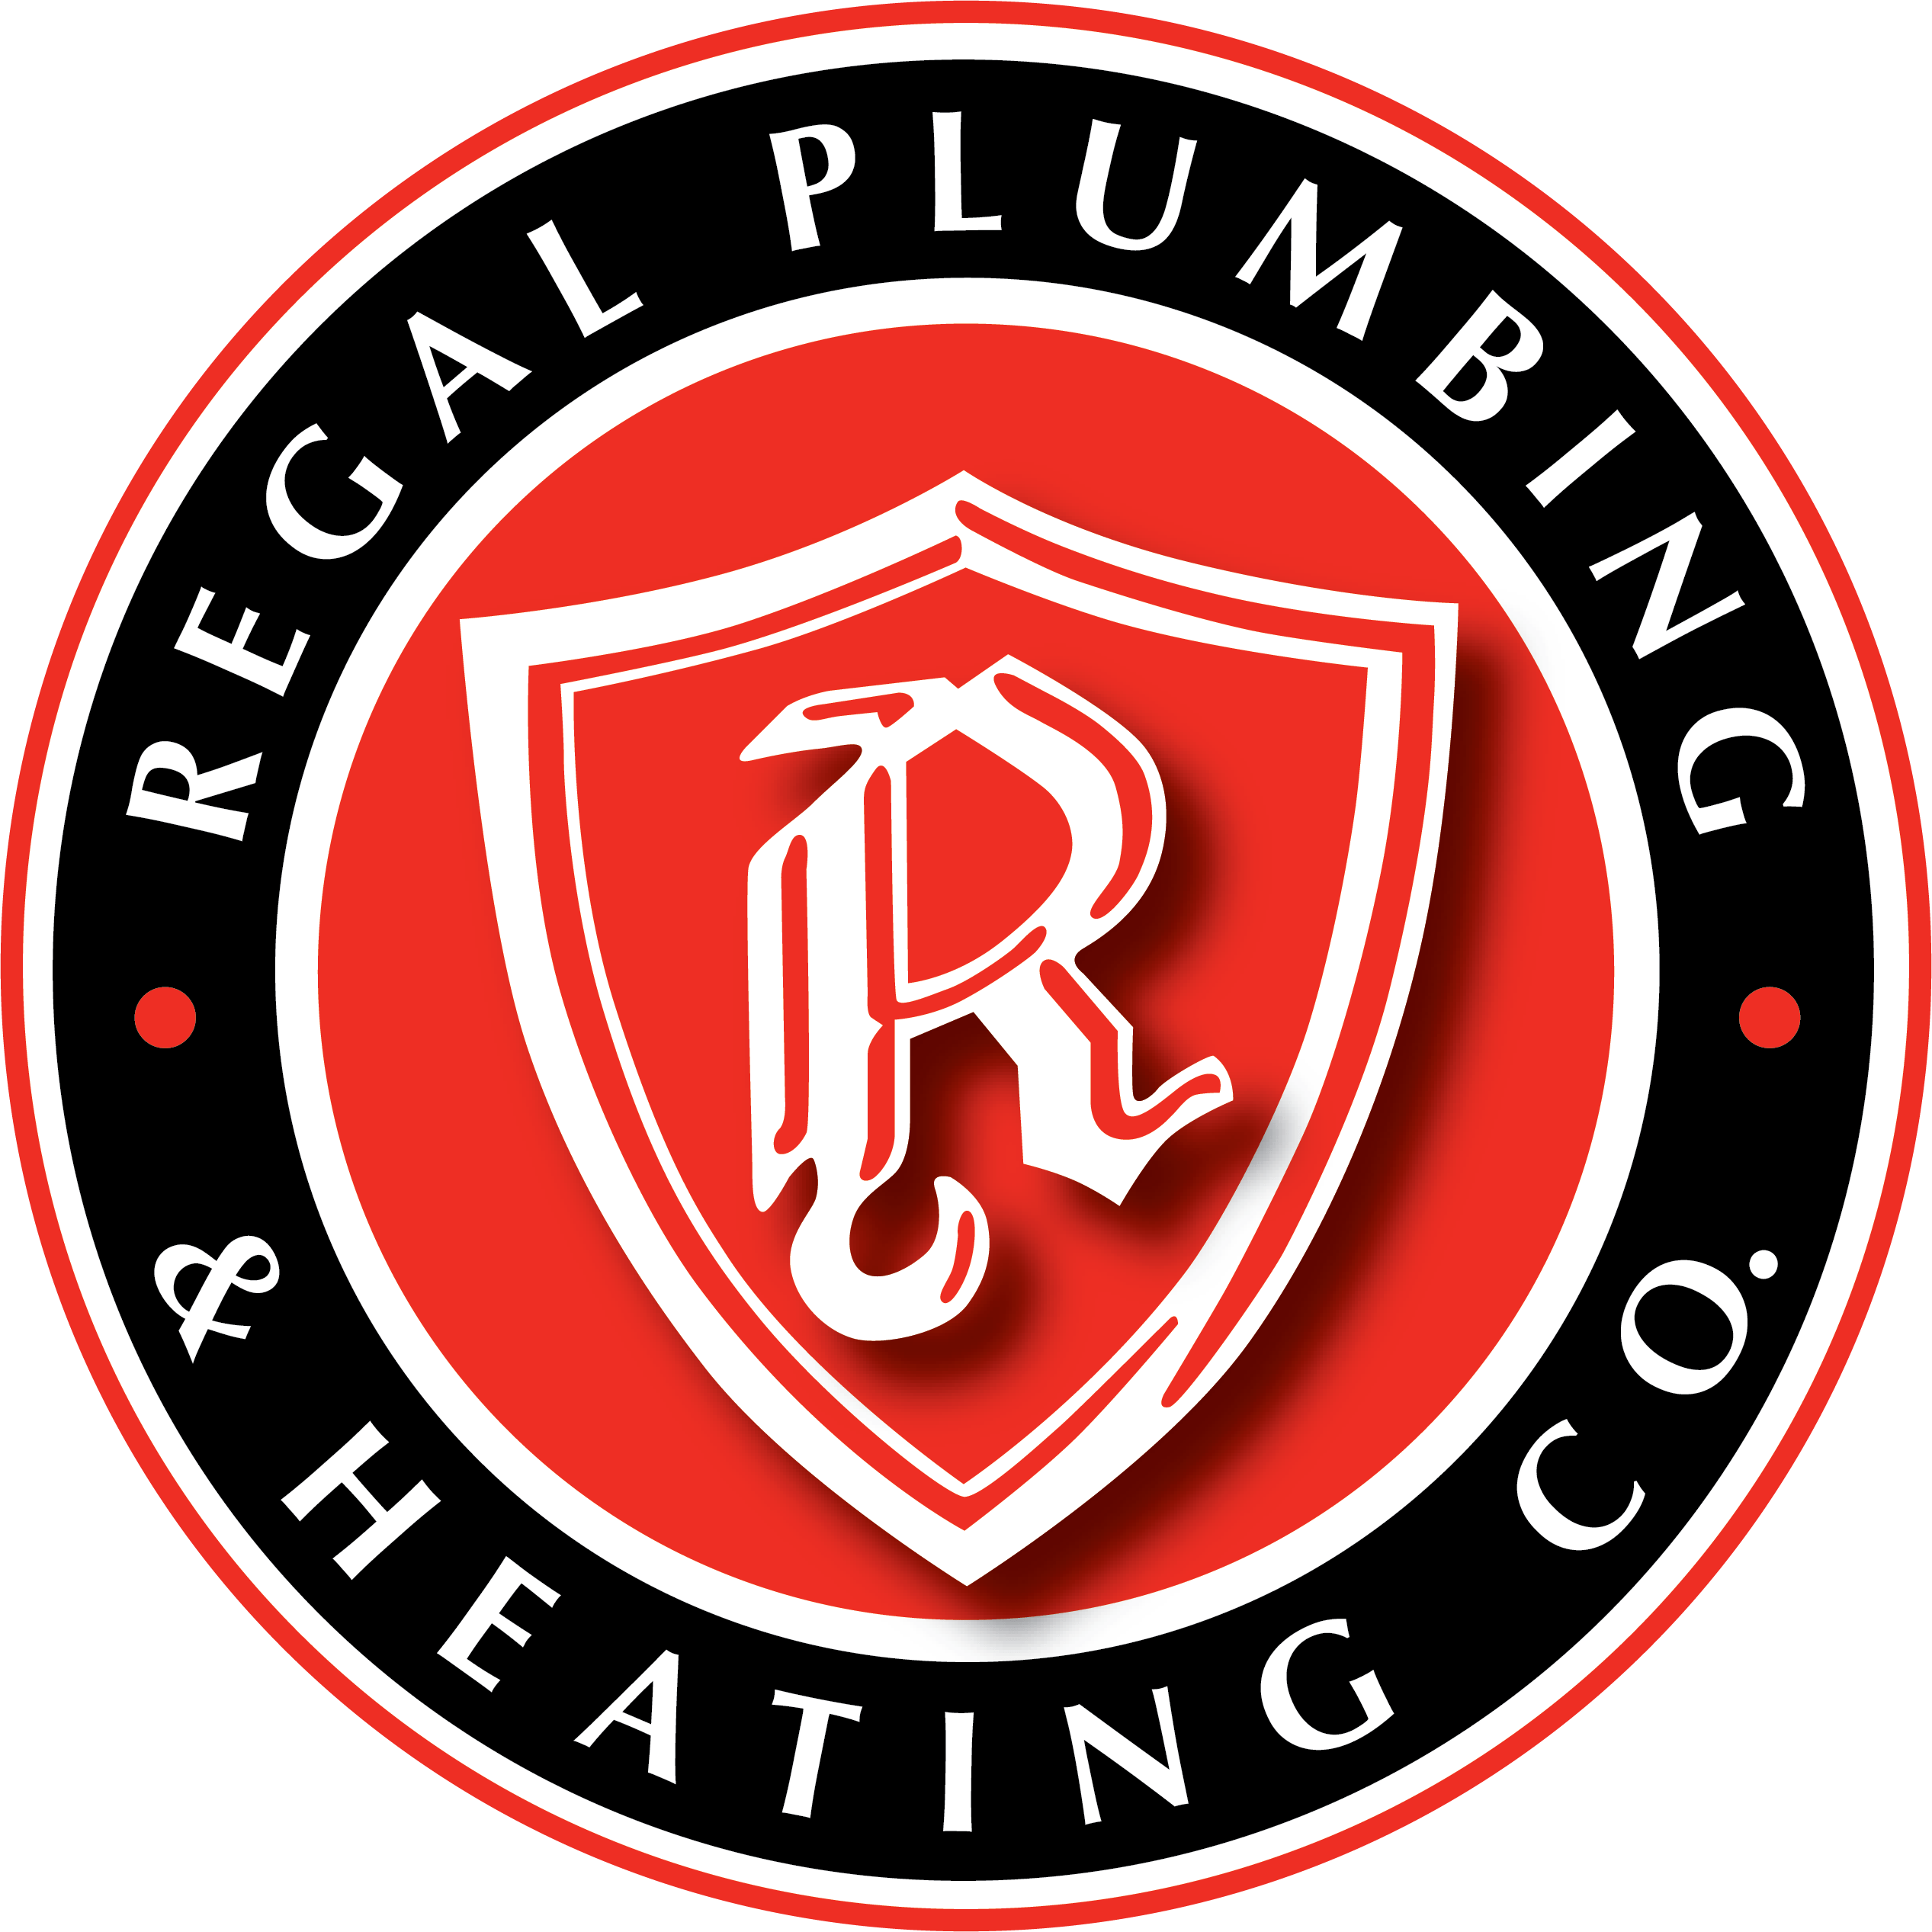 Regal Plumbing & Heating Co. |  Ohio Mechanical Contractors